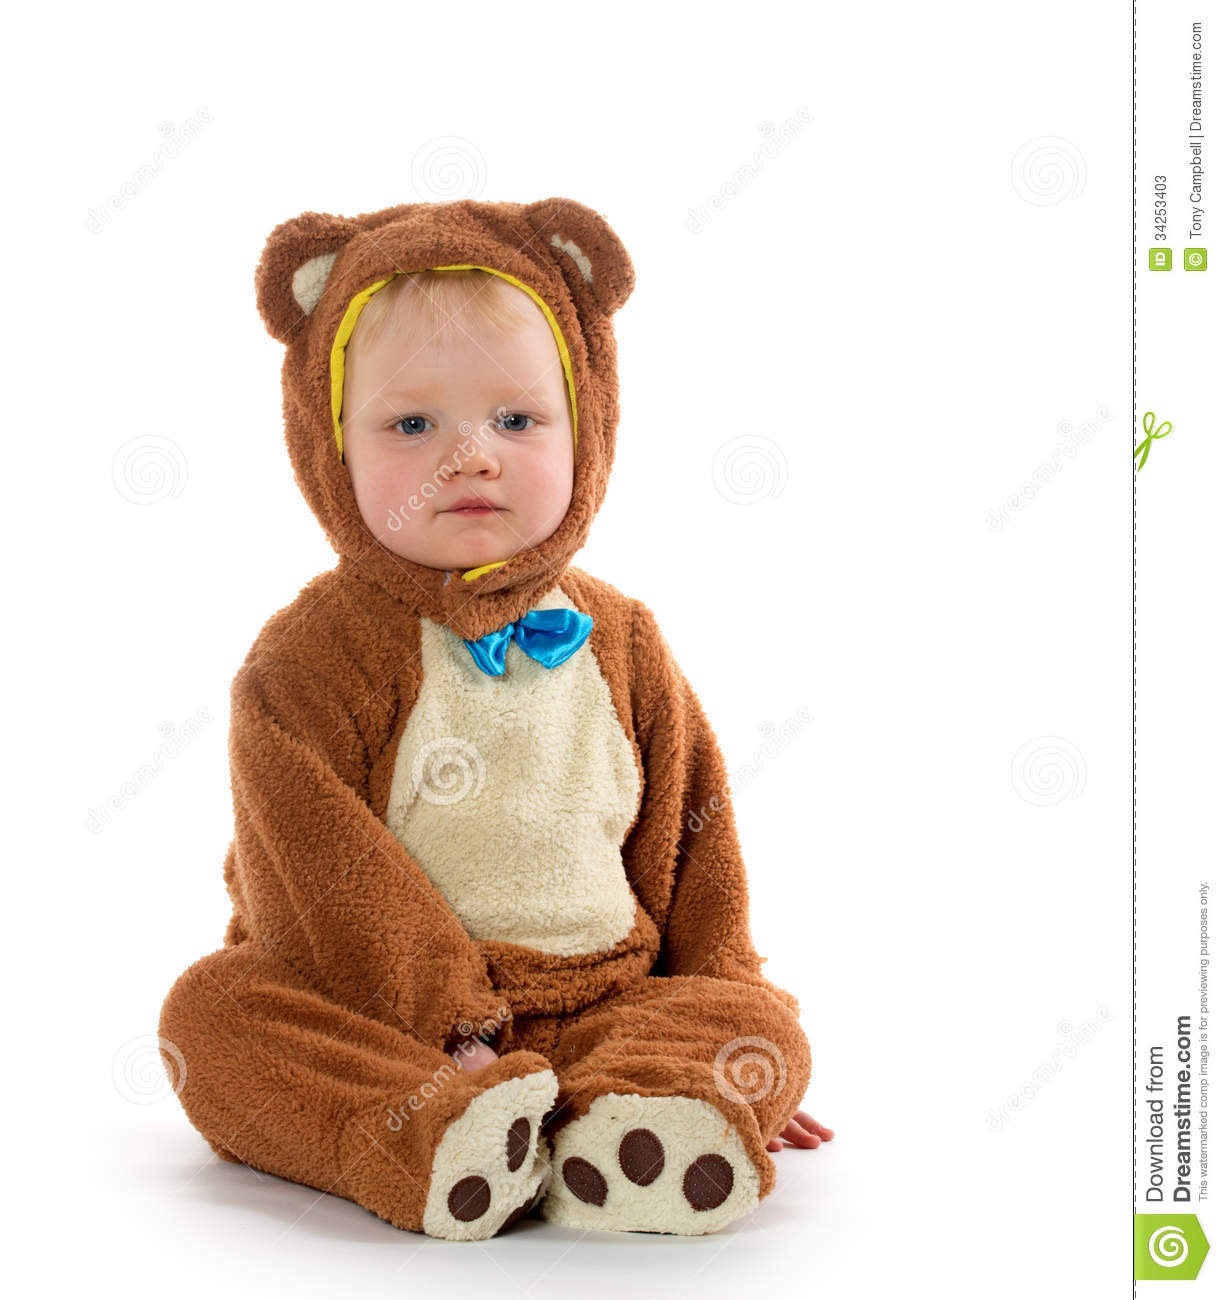 Download Baby boy in bear costume stock image. Image of halloween - 34253403  sc 1 st  Dreamstime.com & Baby boy in bear costume stock image. Image of halloween - 34253403